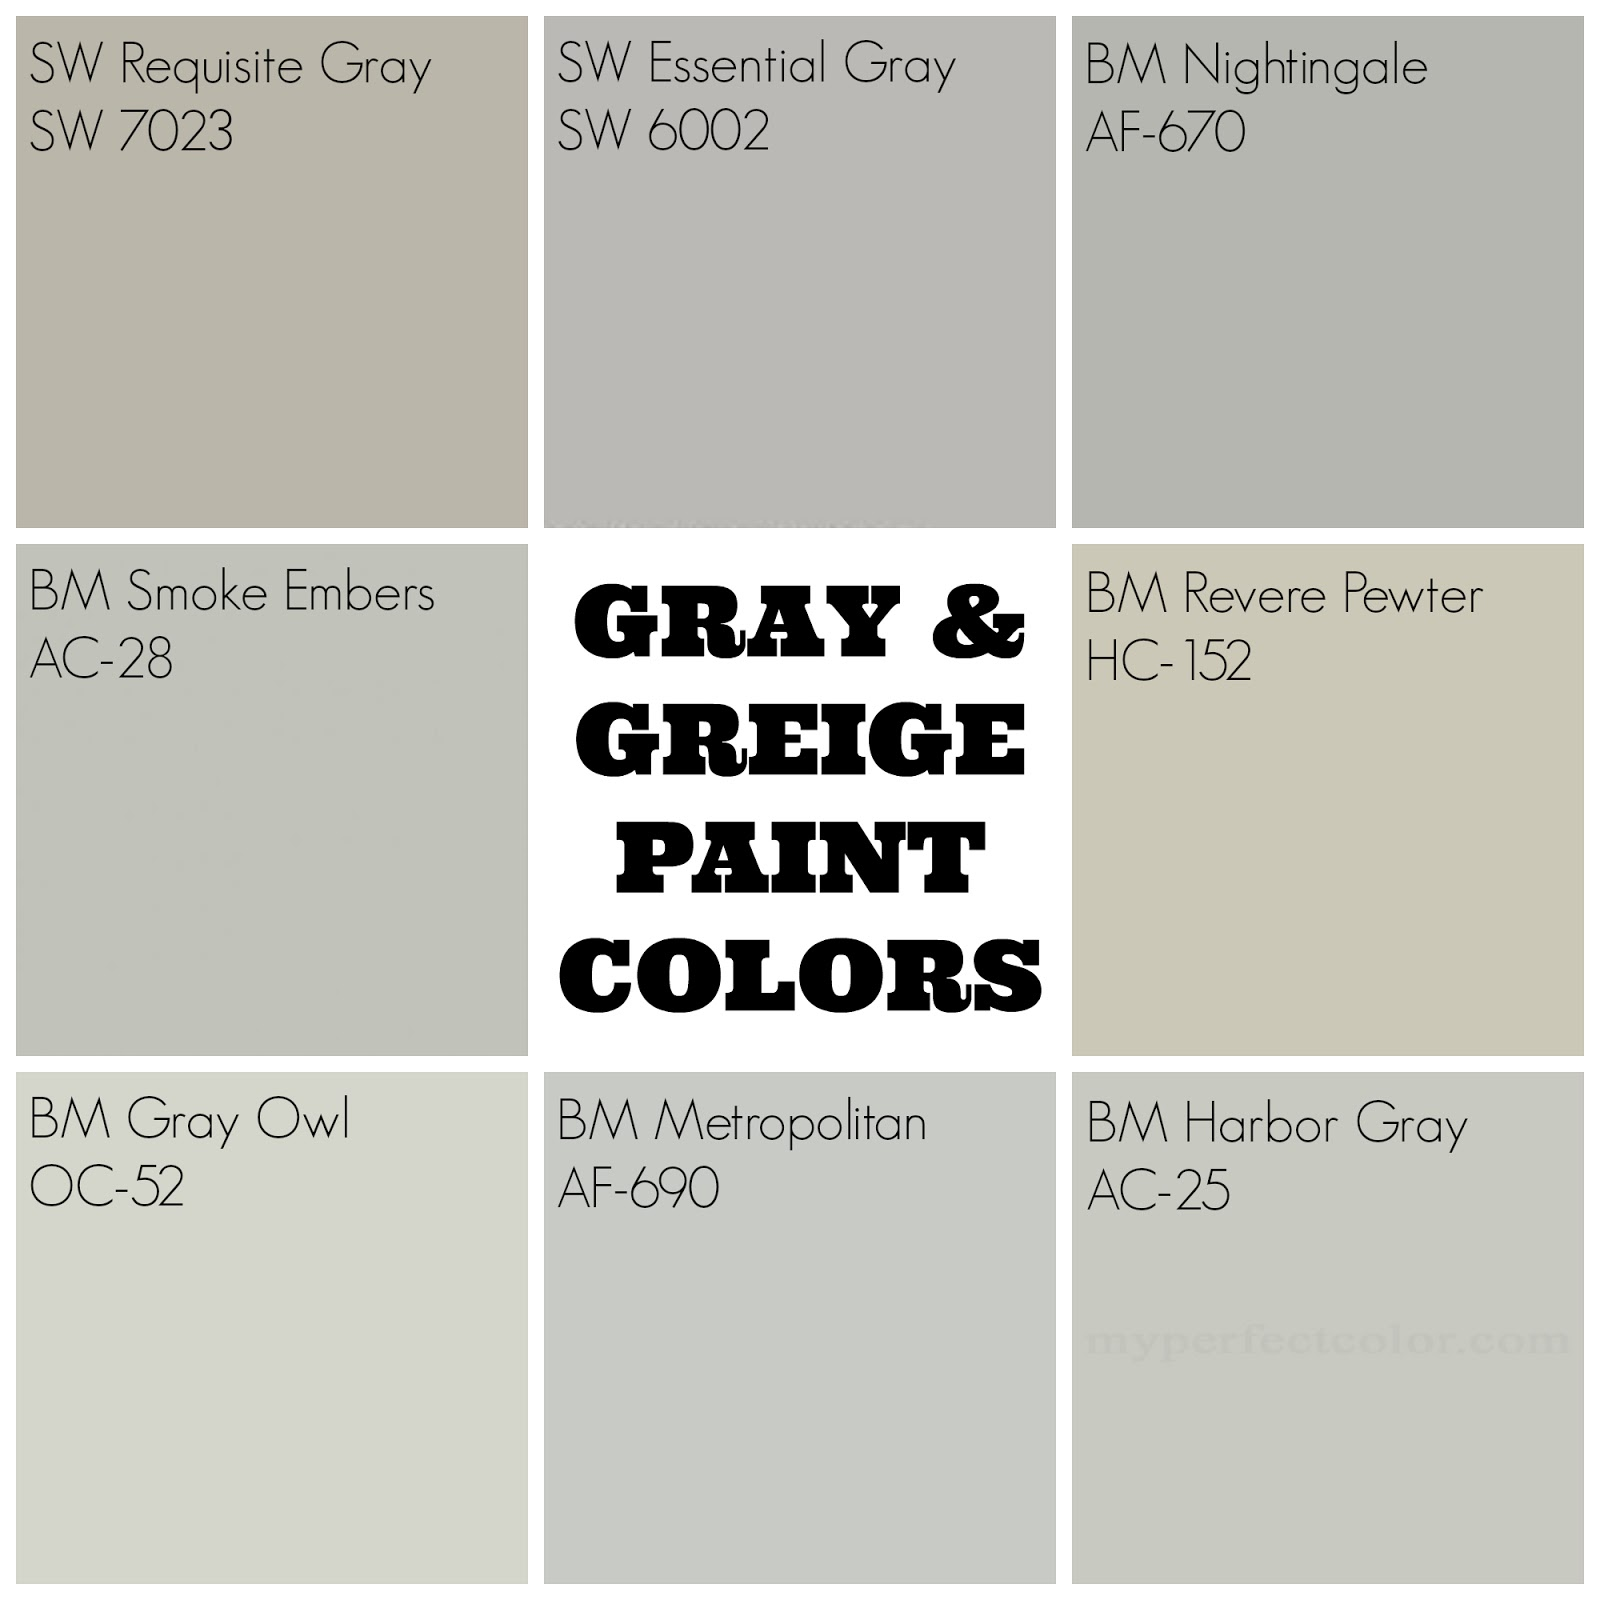 I Feel Like With The Exception Of RP And RG Being Obviously More Beige Than Gray Rest Colors Look Pretty Darn Similar But On Wall